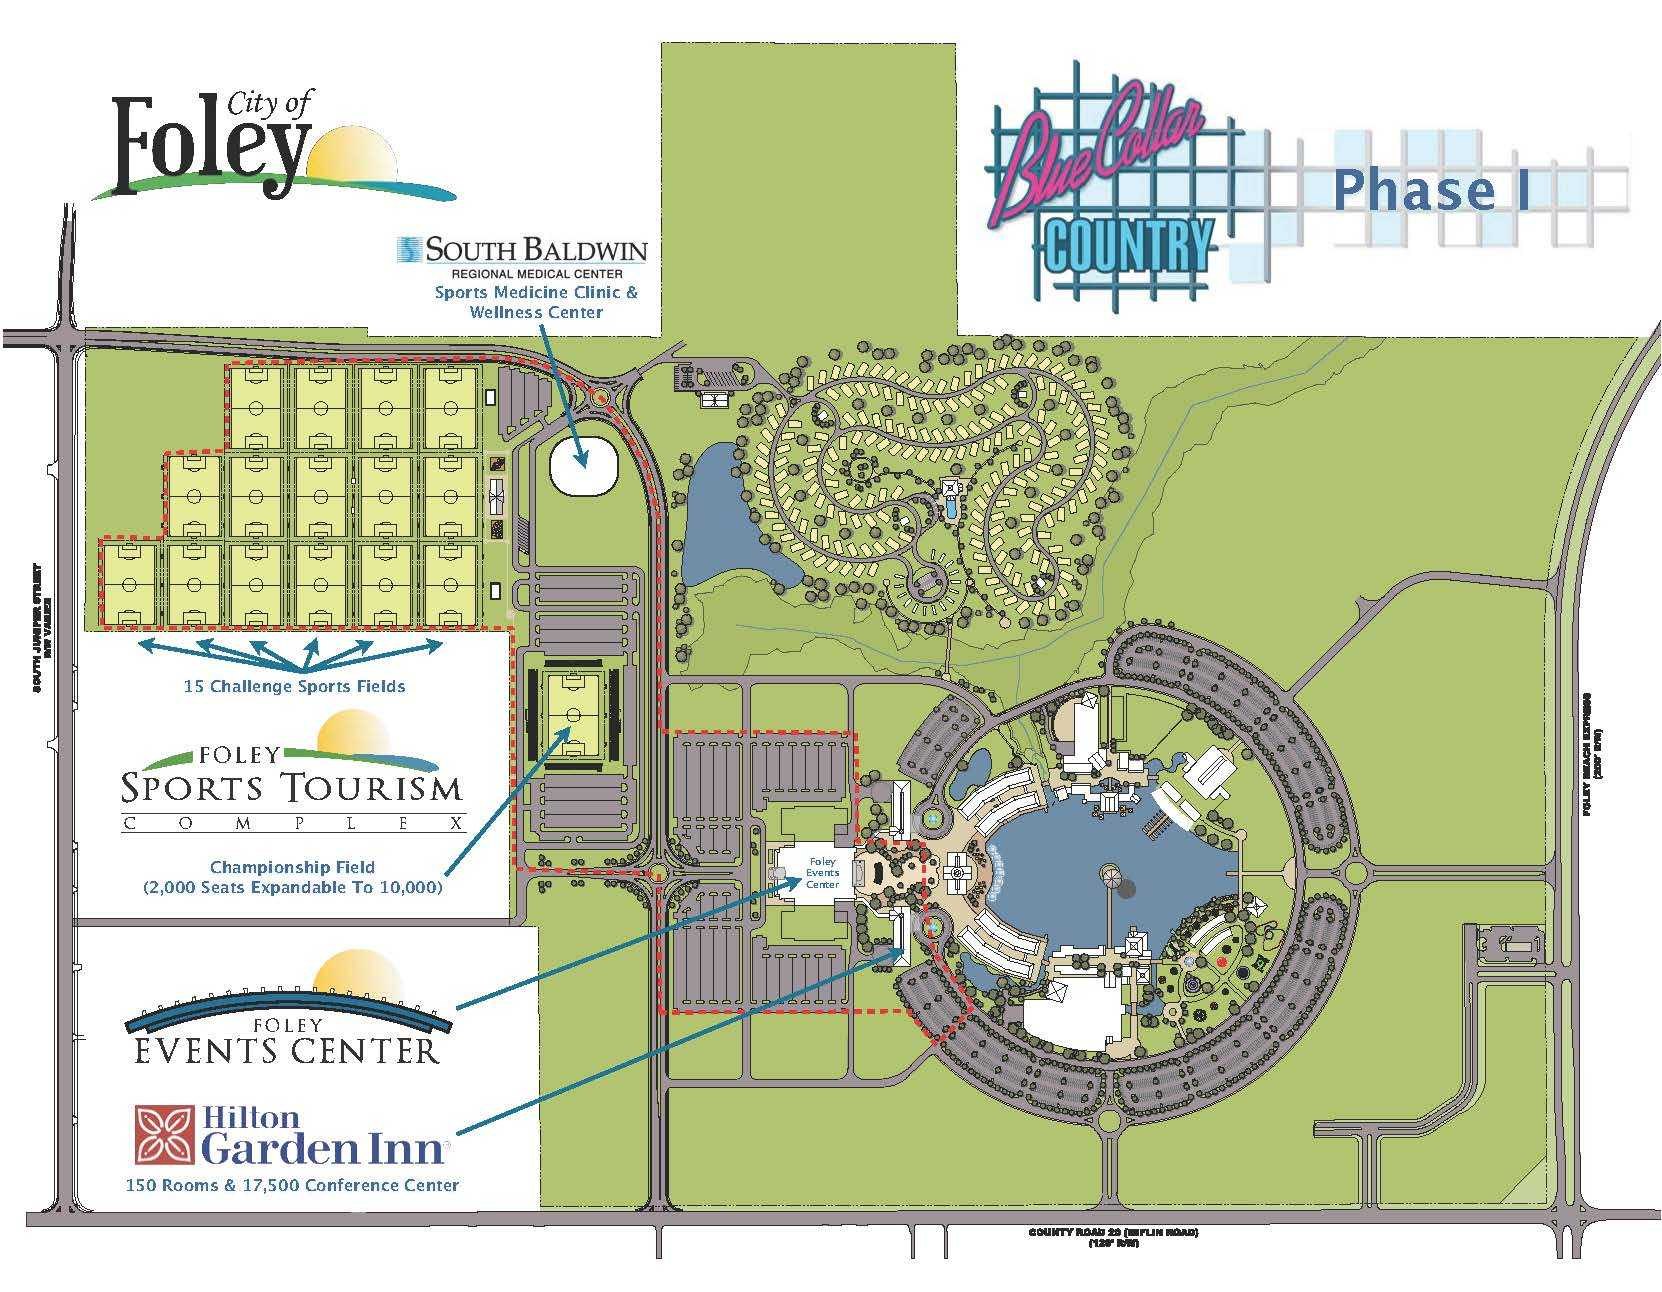 mobile al realty with Foley Sports Tourism  Plex on Detail additionally Hobbs Island Road Huntsville Al 35803 in addition Detail besides Thuraya Appoints Al Mazrui As First Woman To Serve As Board Member likewise 2198219.